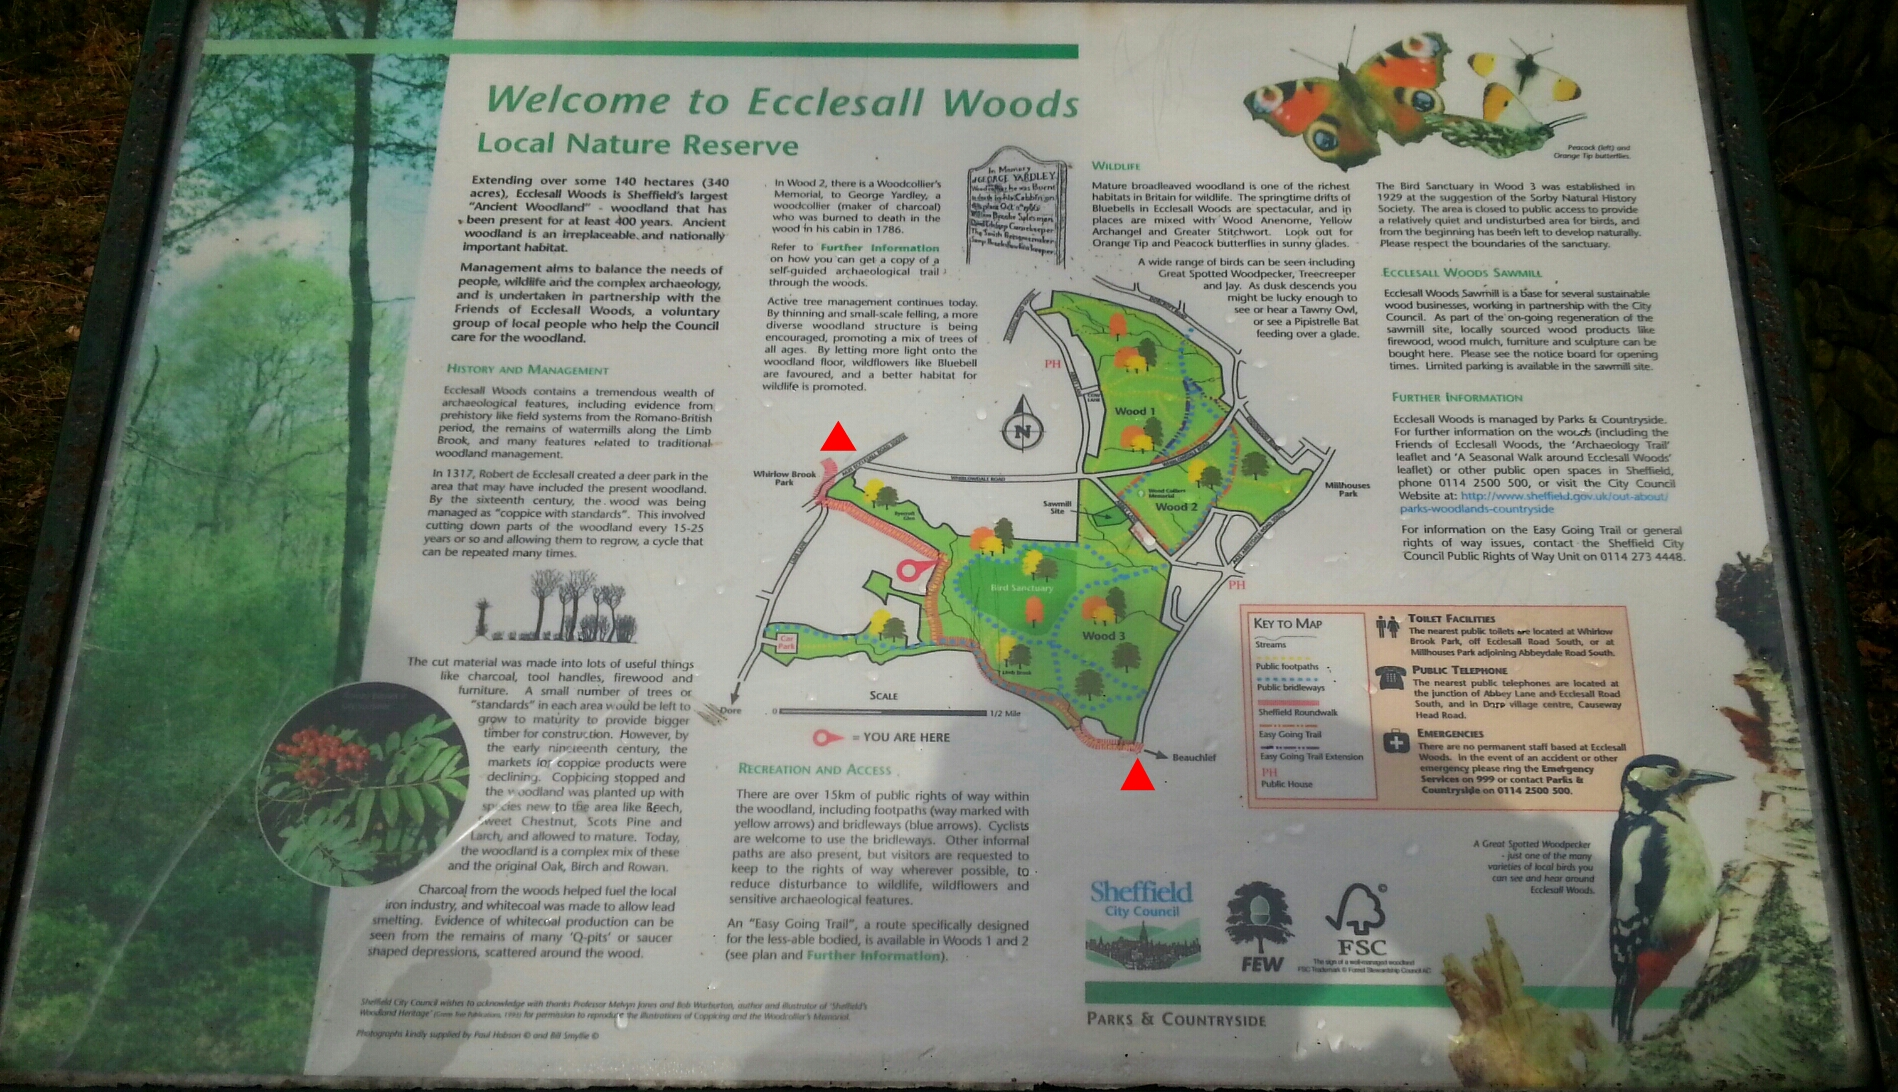 Map of Ecclesall Woods.